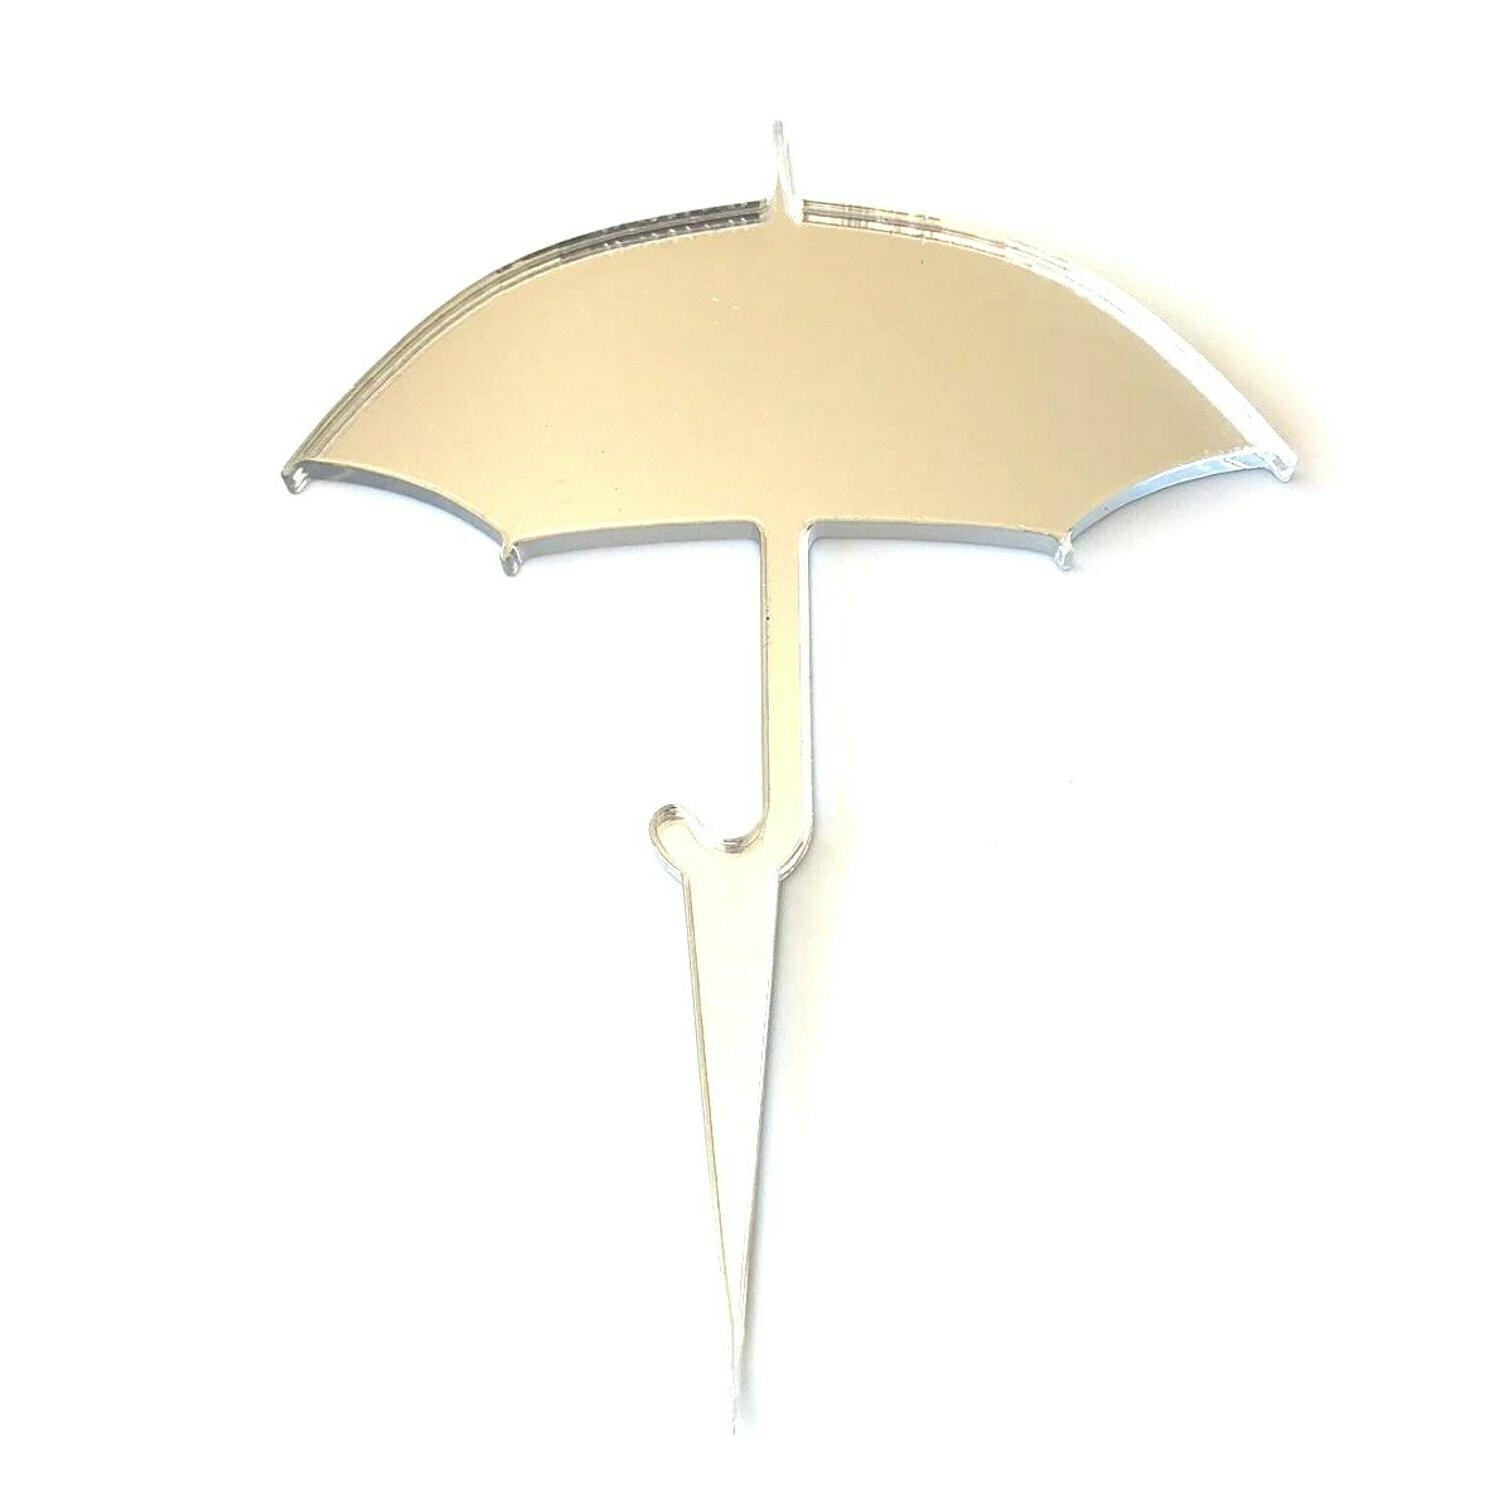 Umbrella Cake & Toppers Sizes or